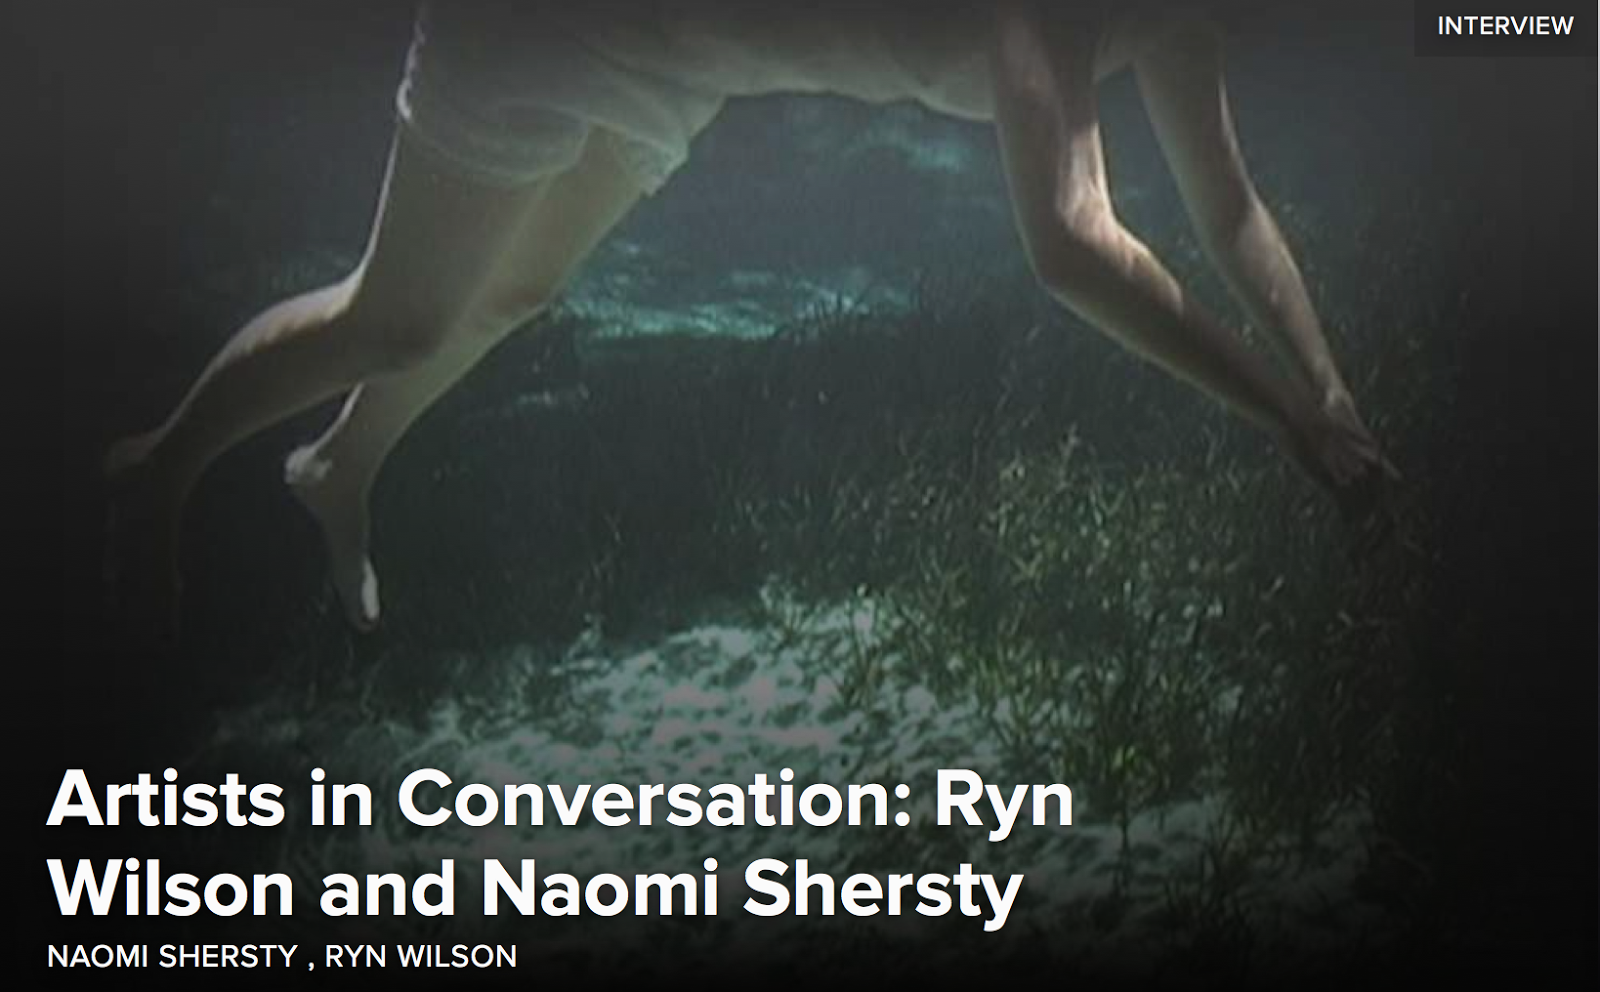 http://pelicanbomb.com/art-review/2015/artists-in-conversation-ryn-wilson-and-naomi-shersty